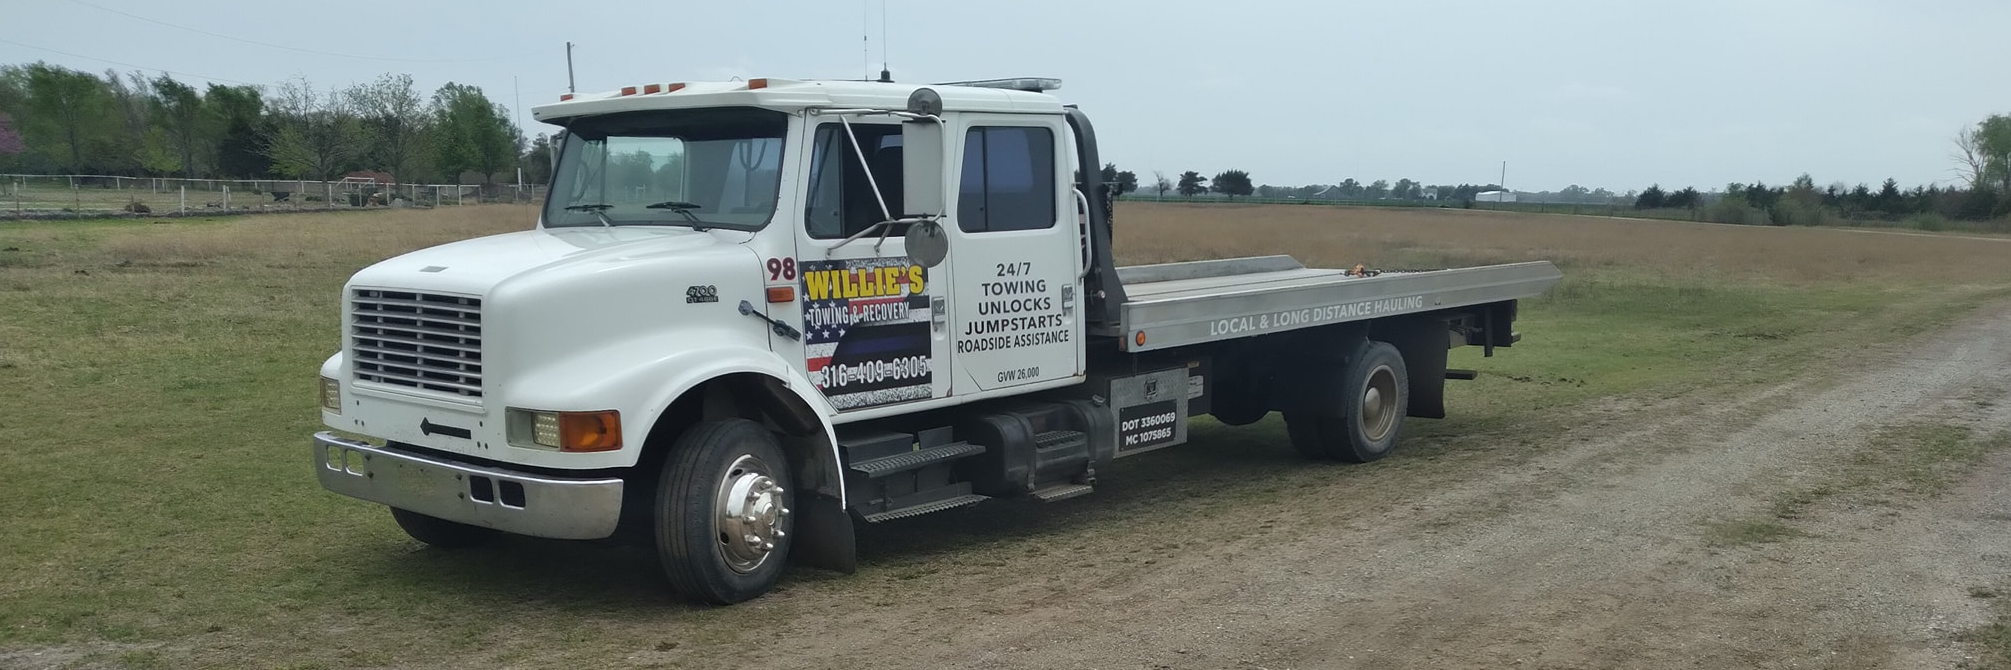 Willie's Towing & Recovery Towing.com Profile Banner